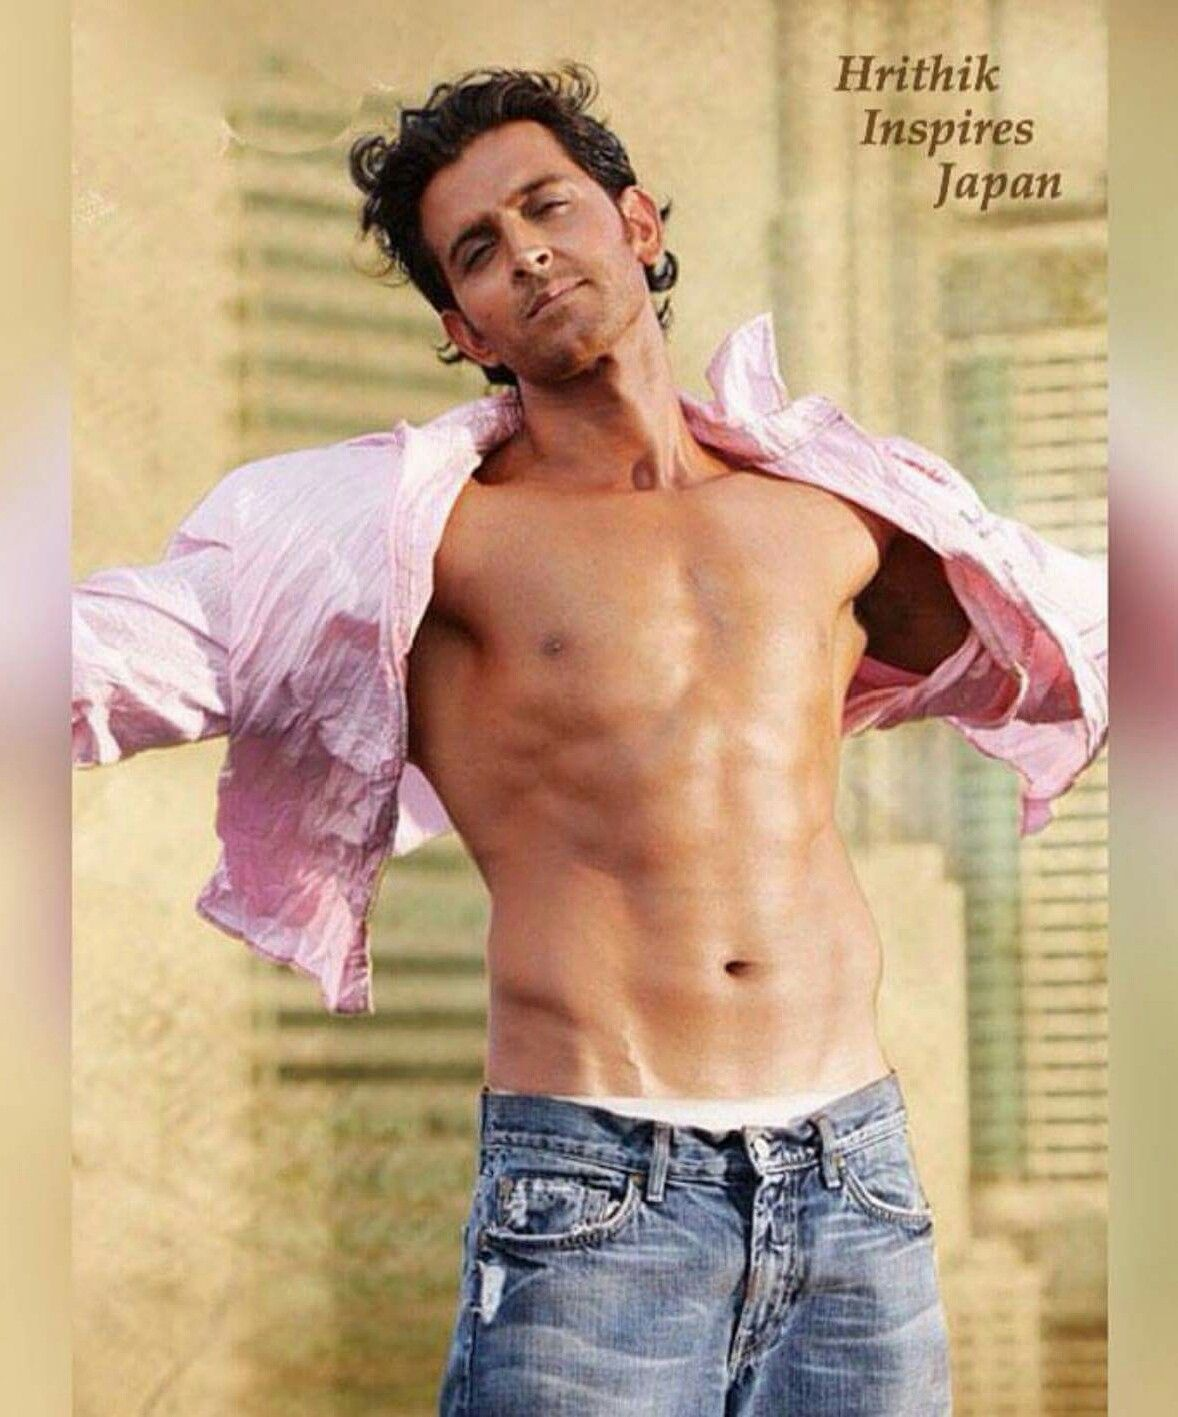 Hrithik roshan nude photo #2